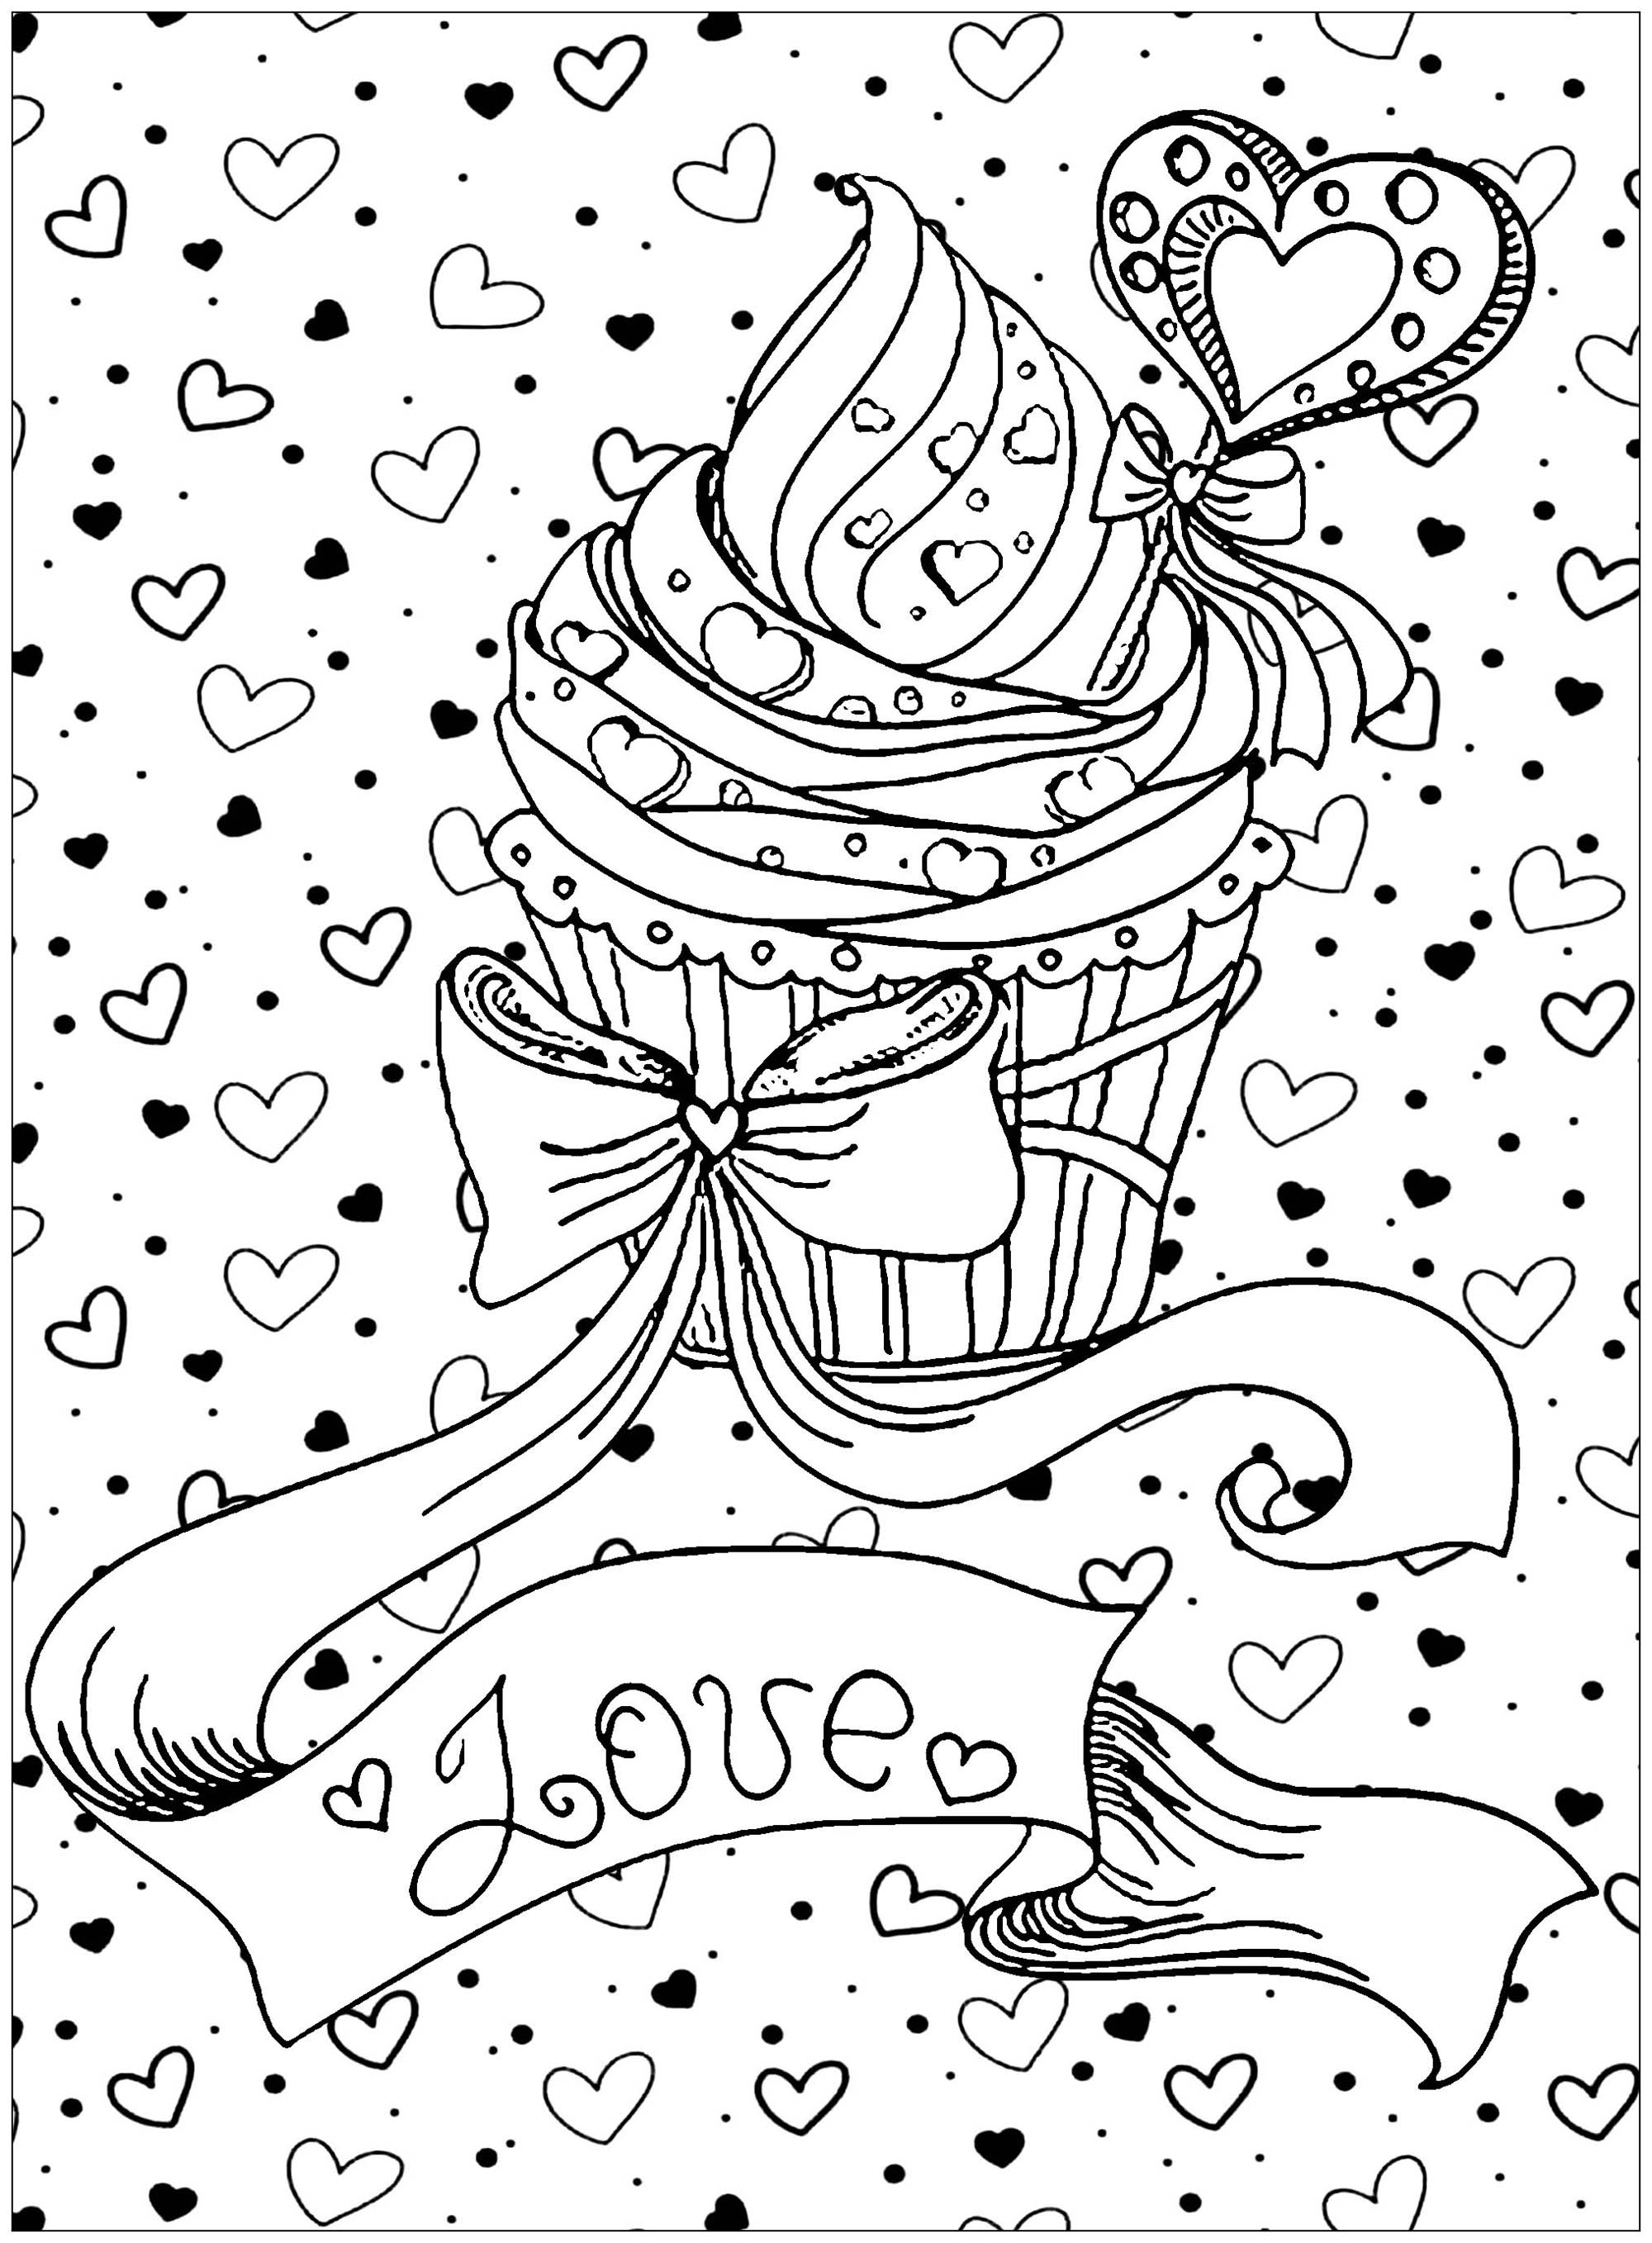 Love - Coloring Pages for Adults